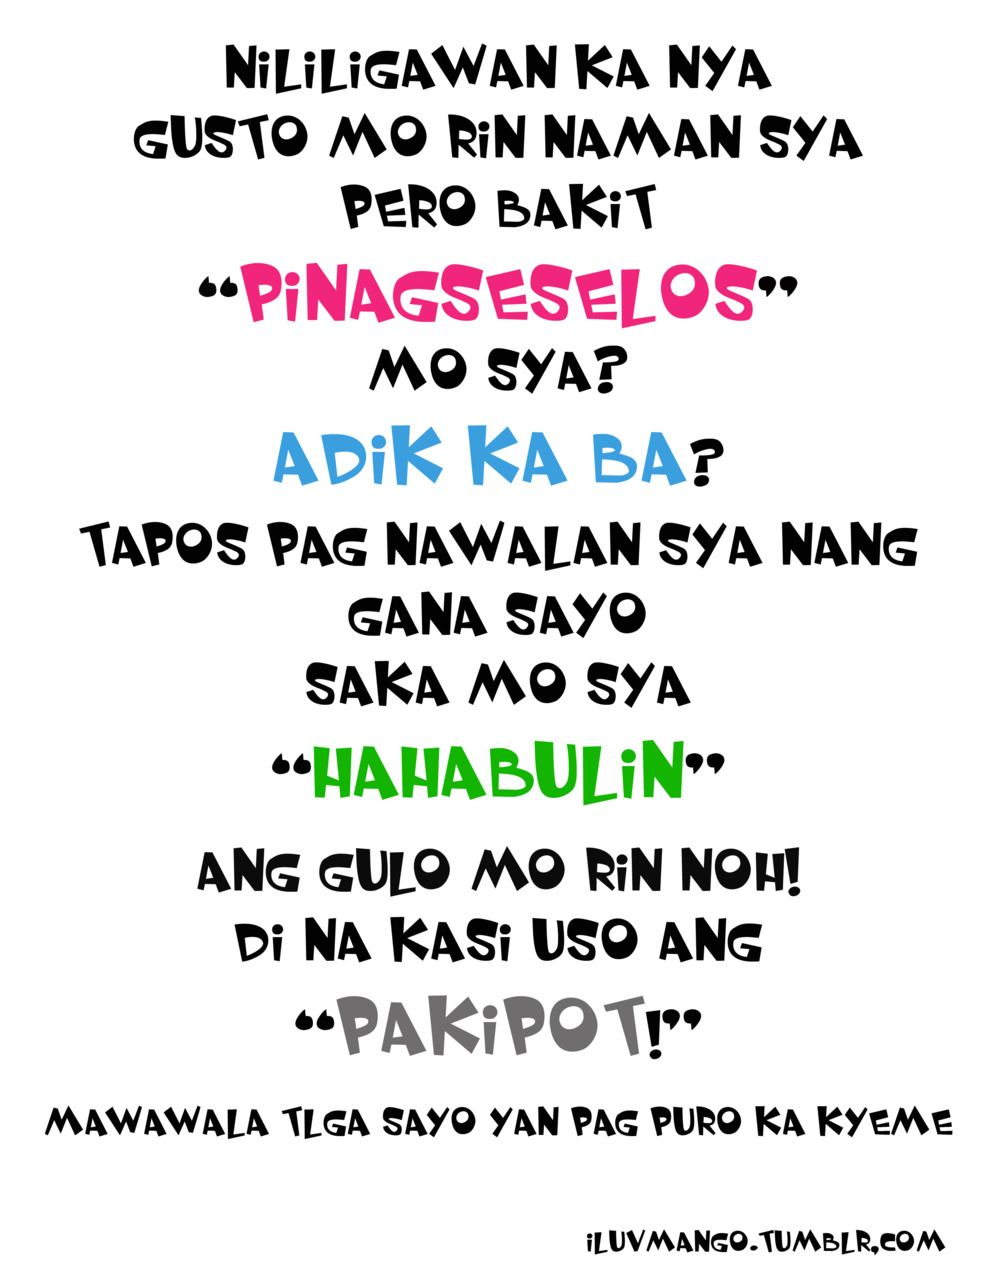 bitter quotes about love tagalog 815 989—